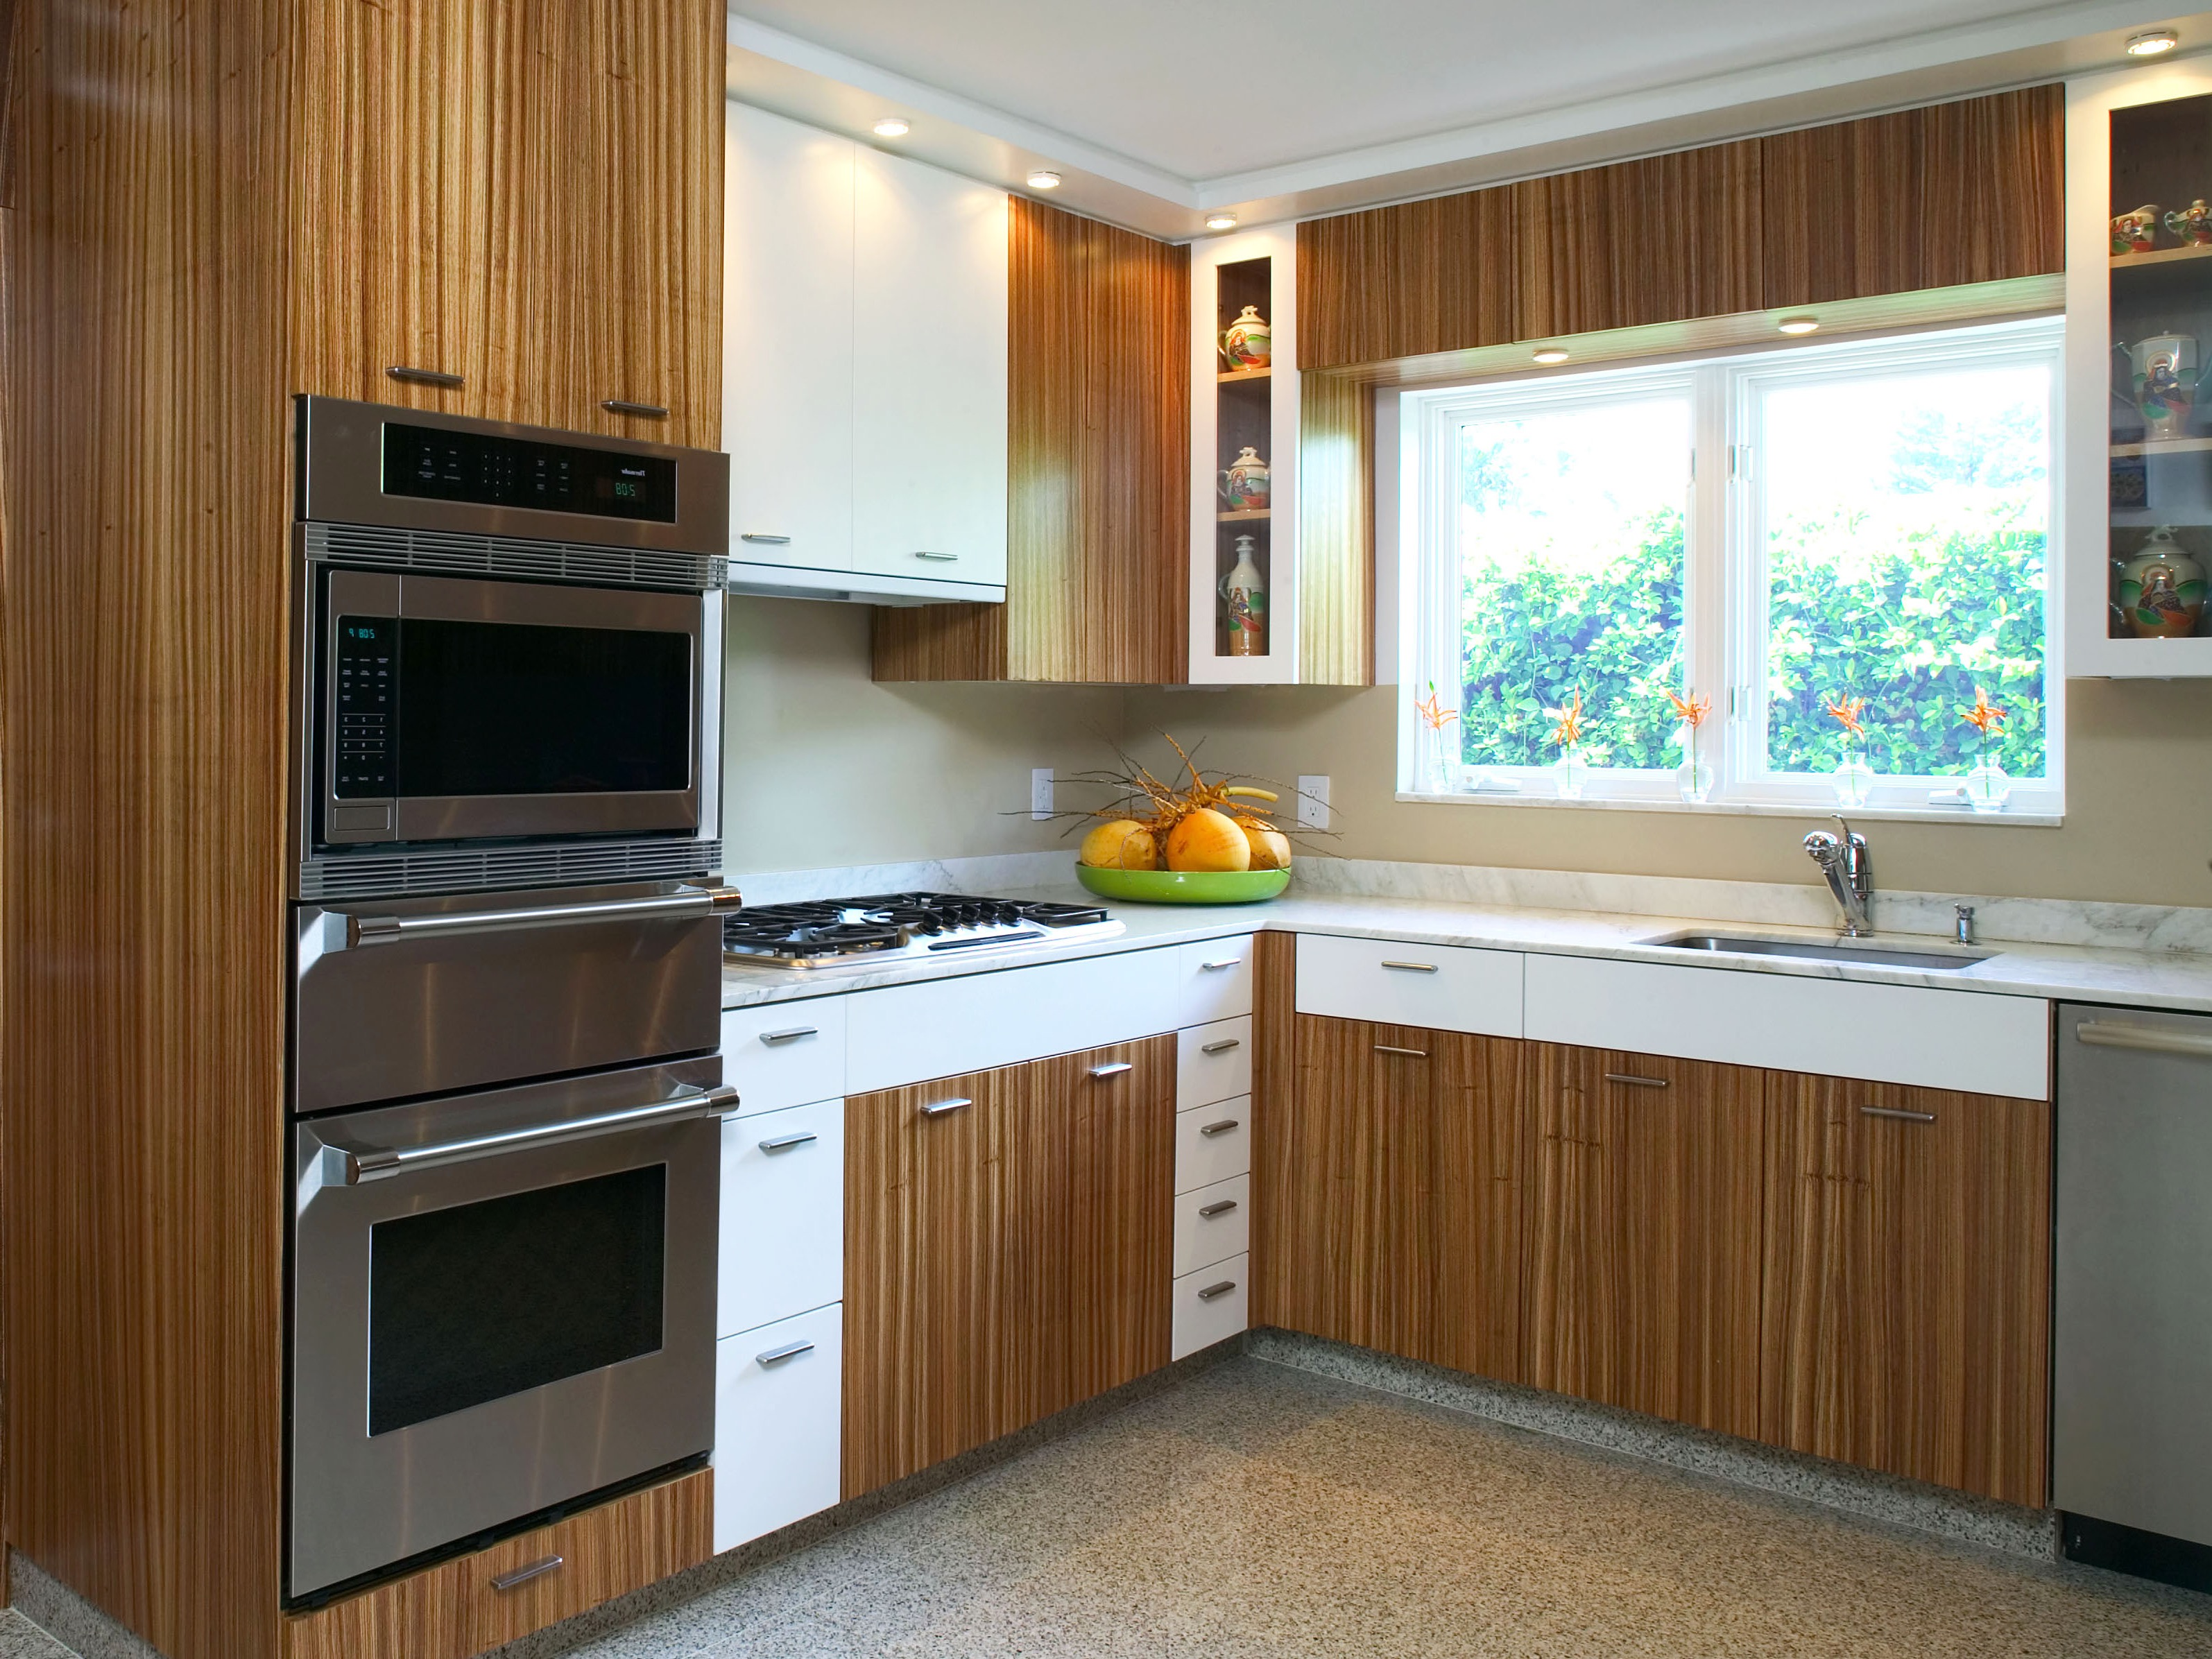 Kitchen Cabinet Wood Reconditioning Zebra Wood Kitchen Cabinets Image To U